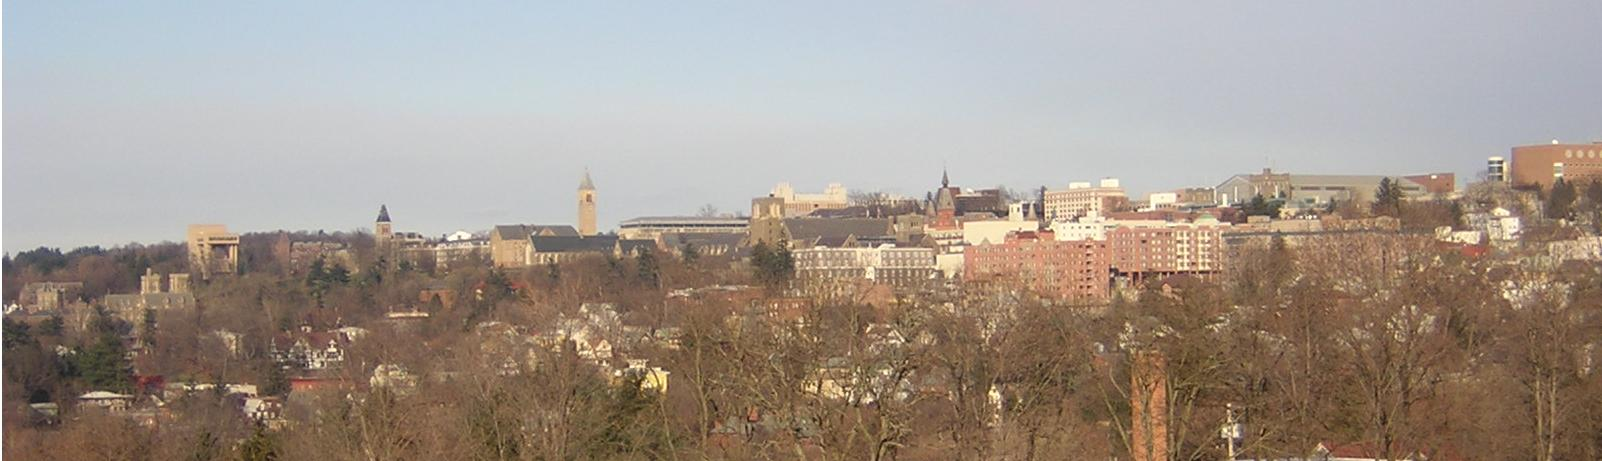 The East Hill area of the city:  Cornell University campus and Collegetown